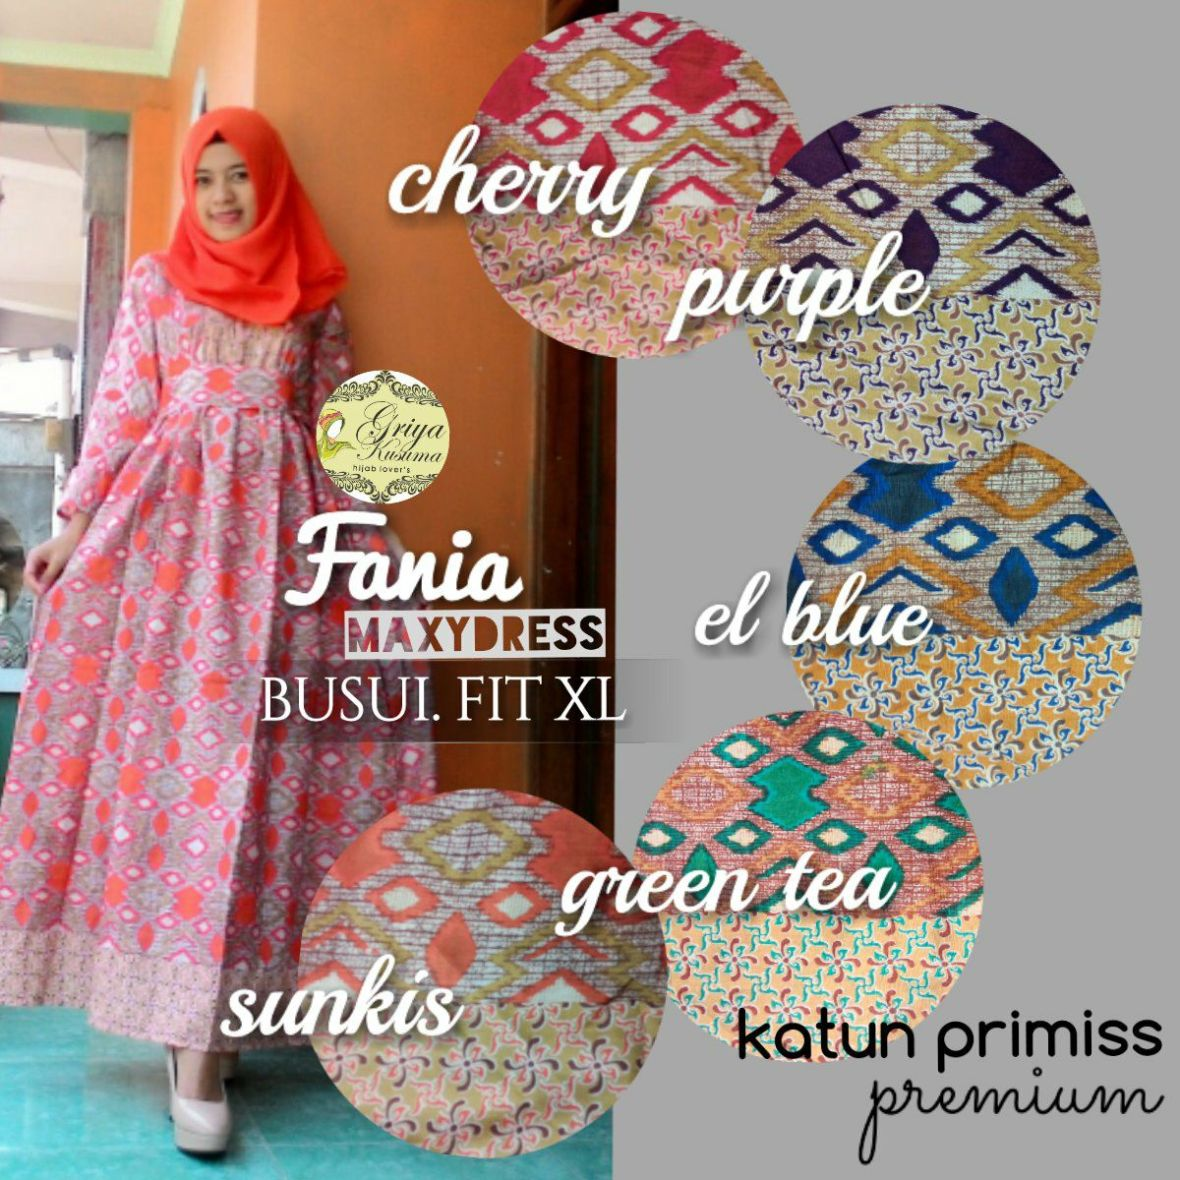 fania-maxy-dress-griya-kusuma